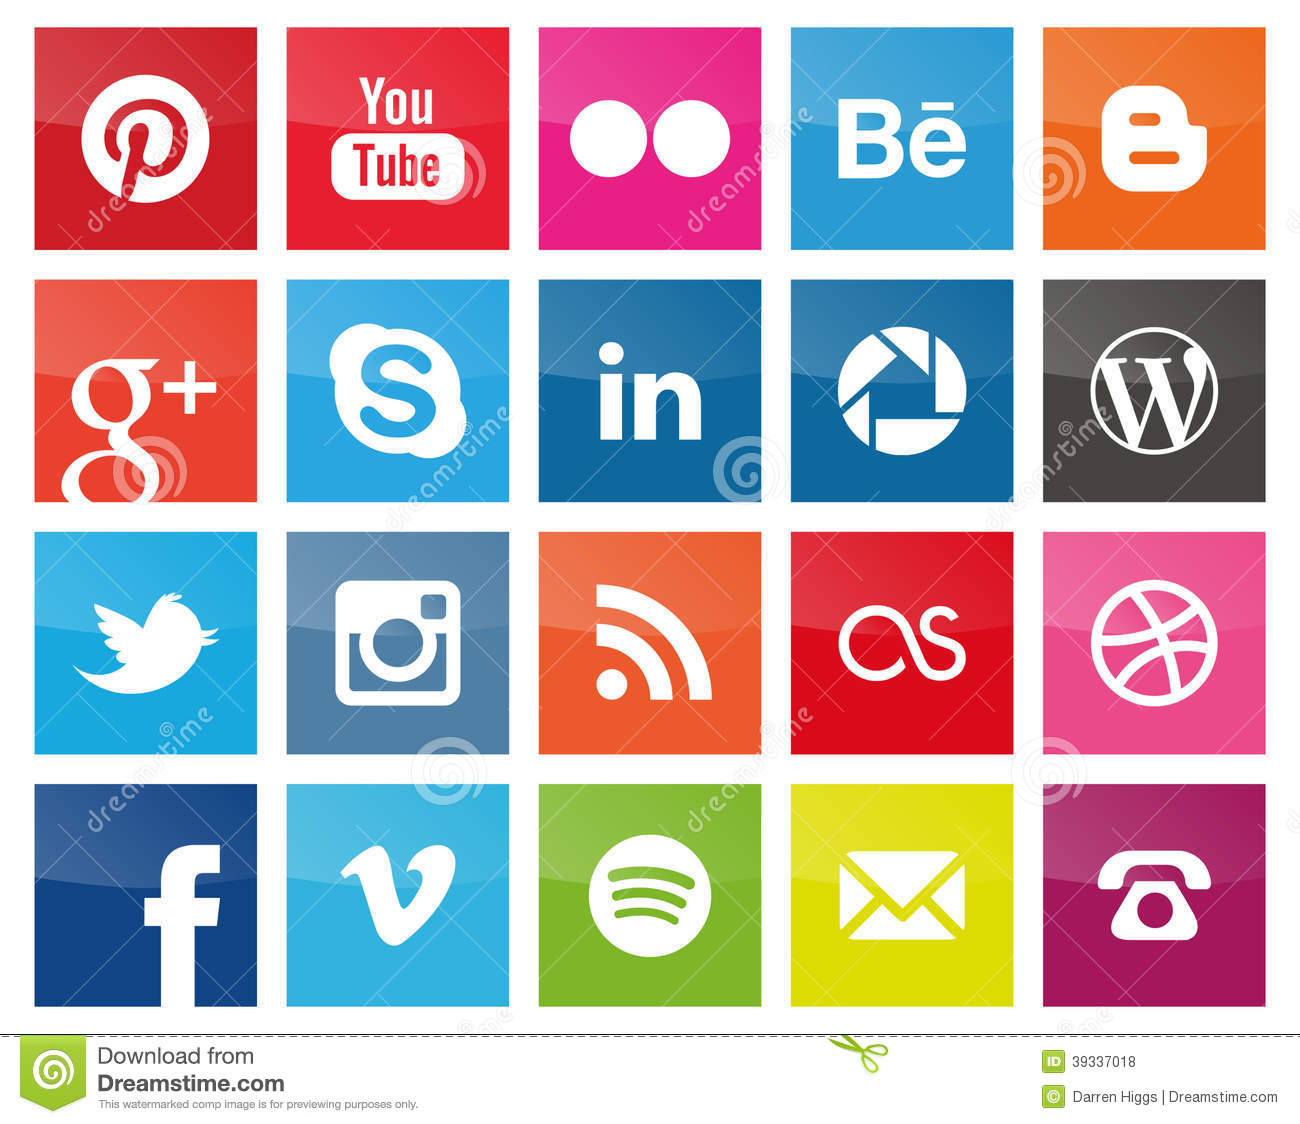 17 Pinterest Social Media Icon Square Images